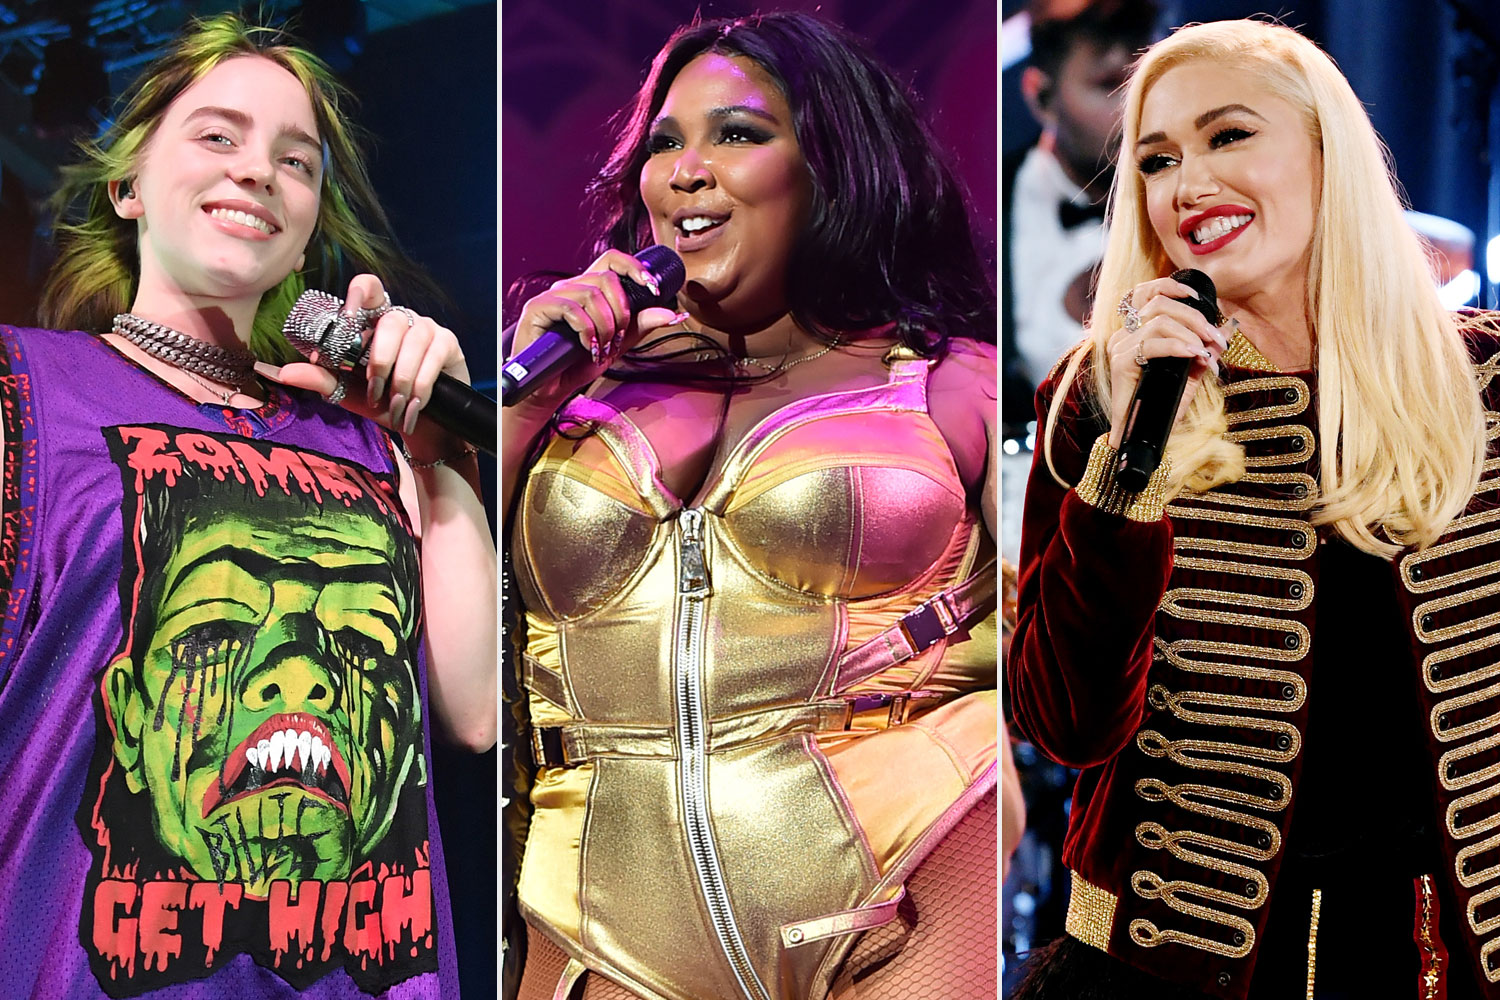 Billie Eilish; Lizzo; Gwen Stefani